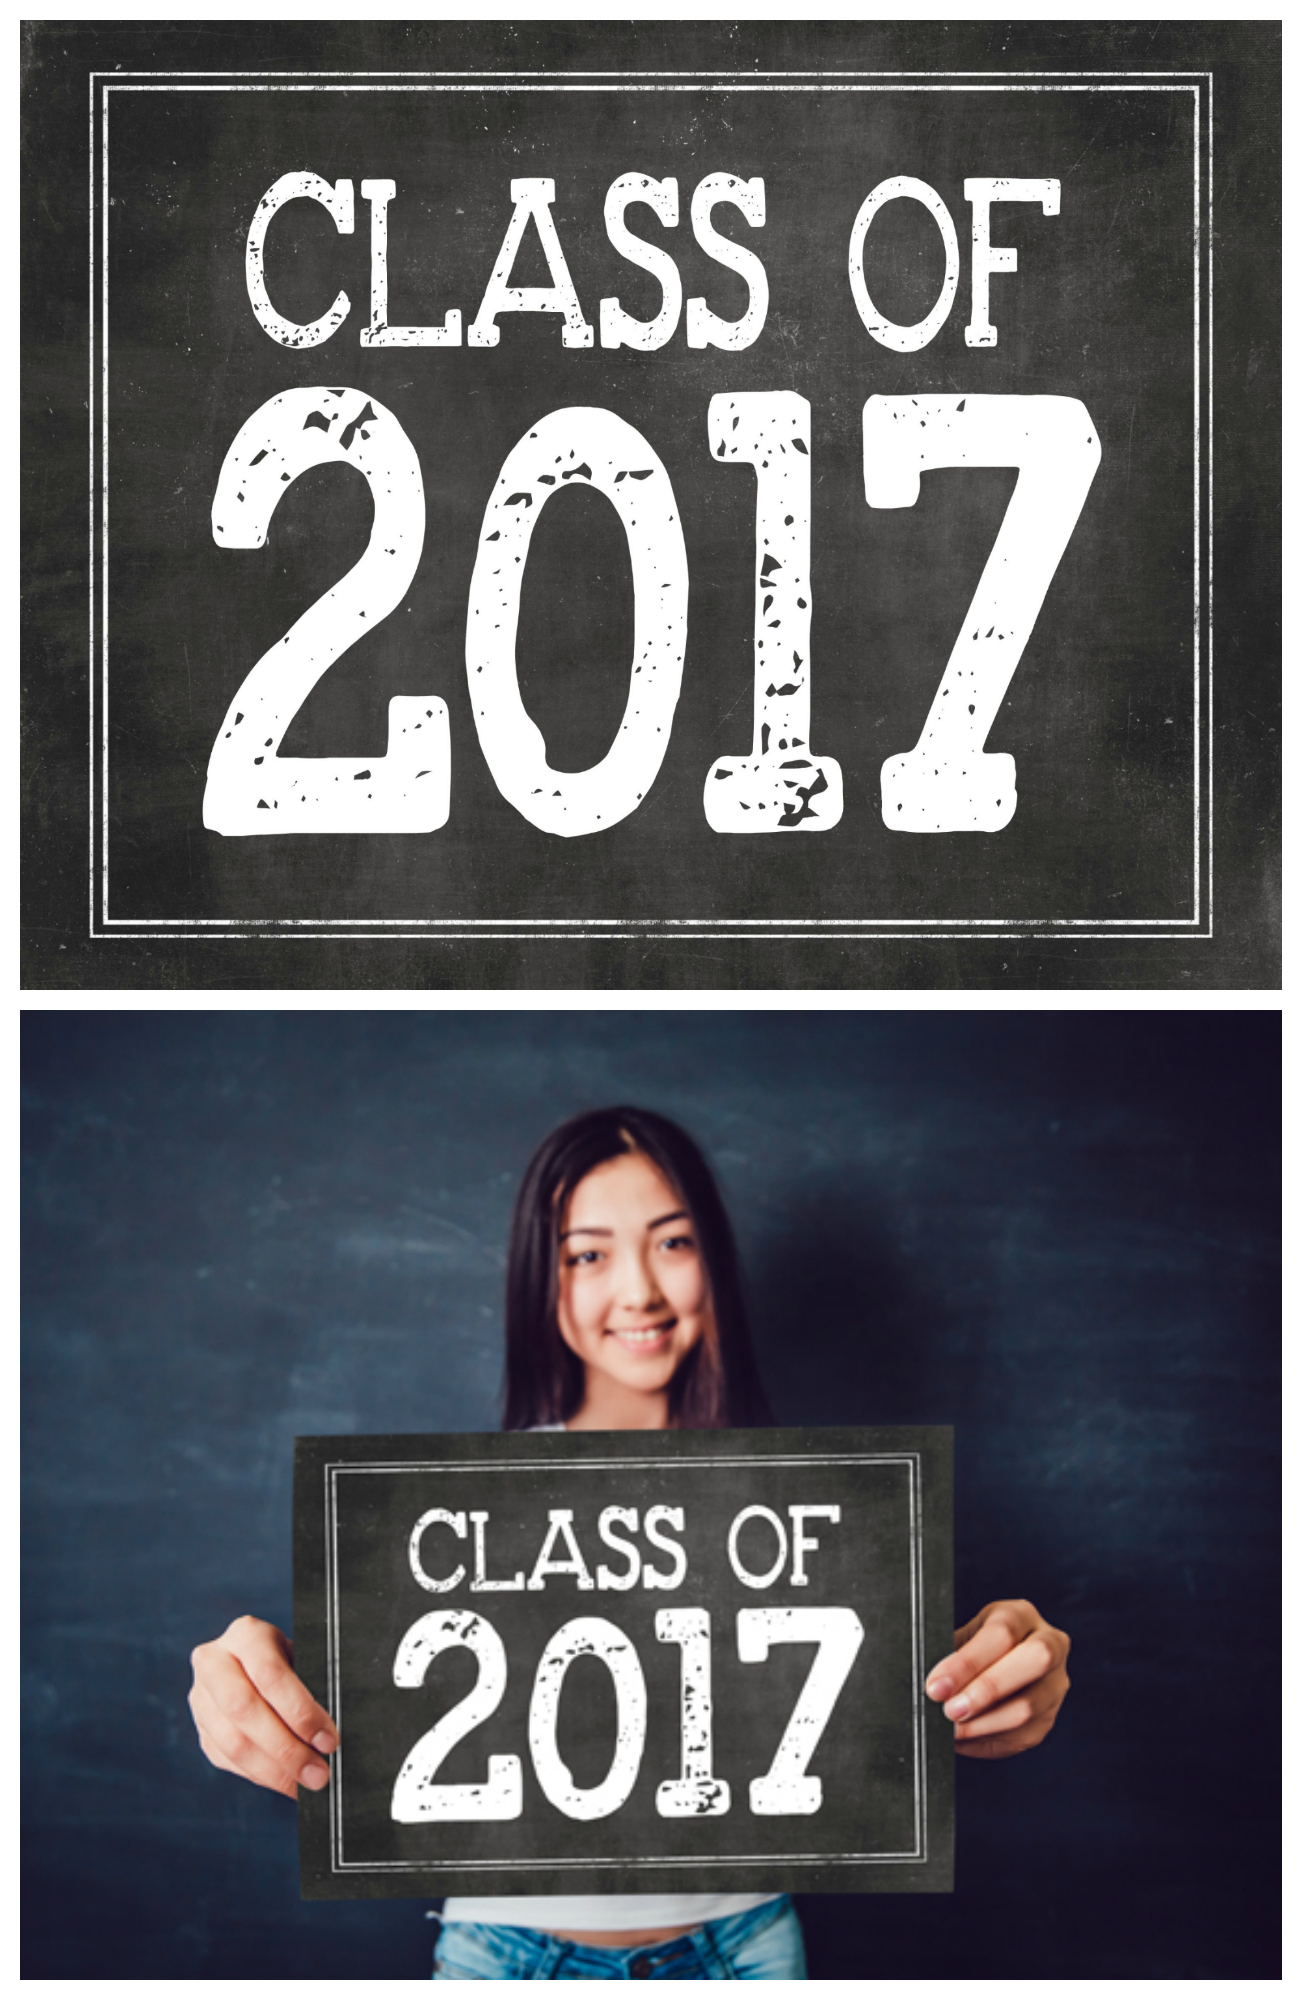 Class of 2017 Free Print | Graduation decoration and works great for a graduation photo prop